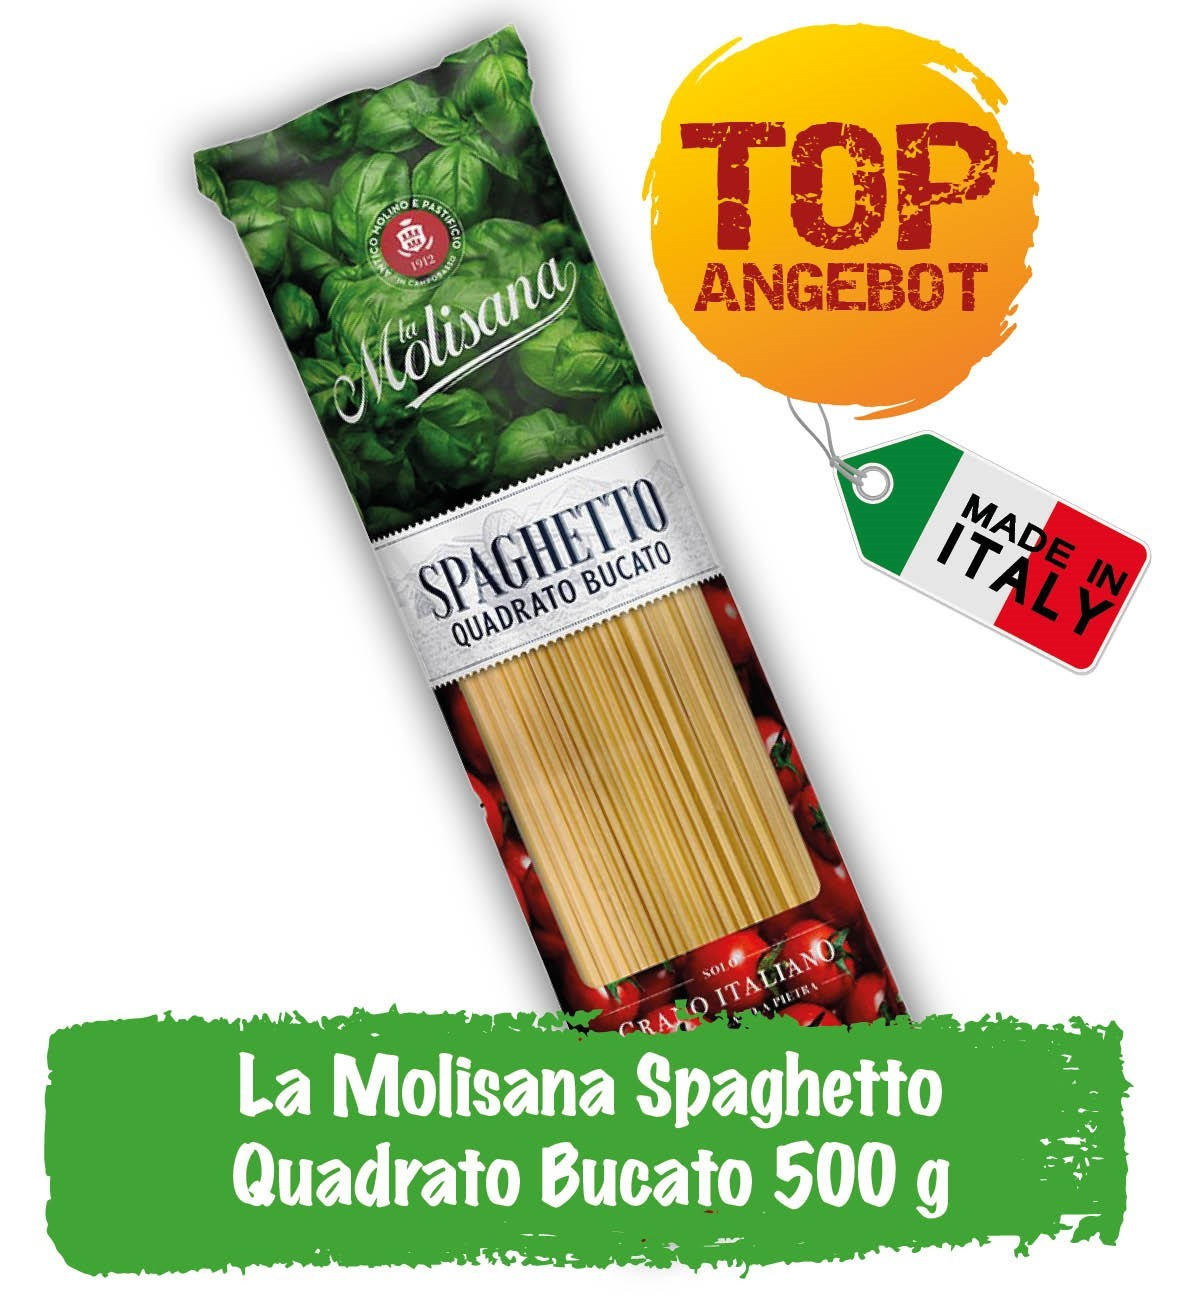 Top_La_Molisana_Spaghetto